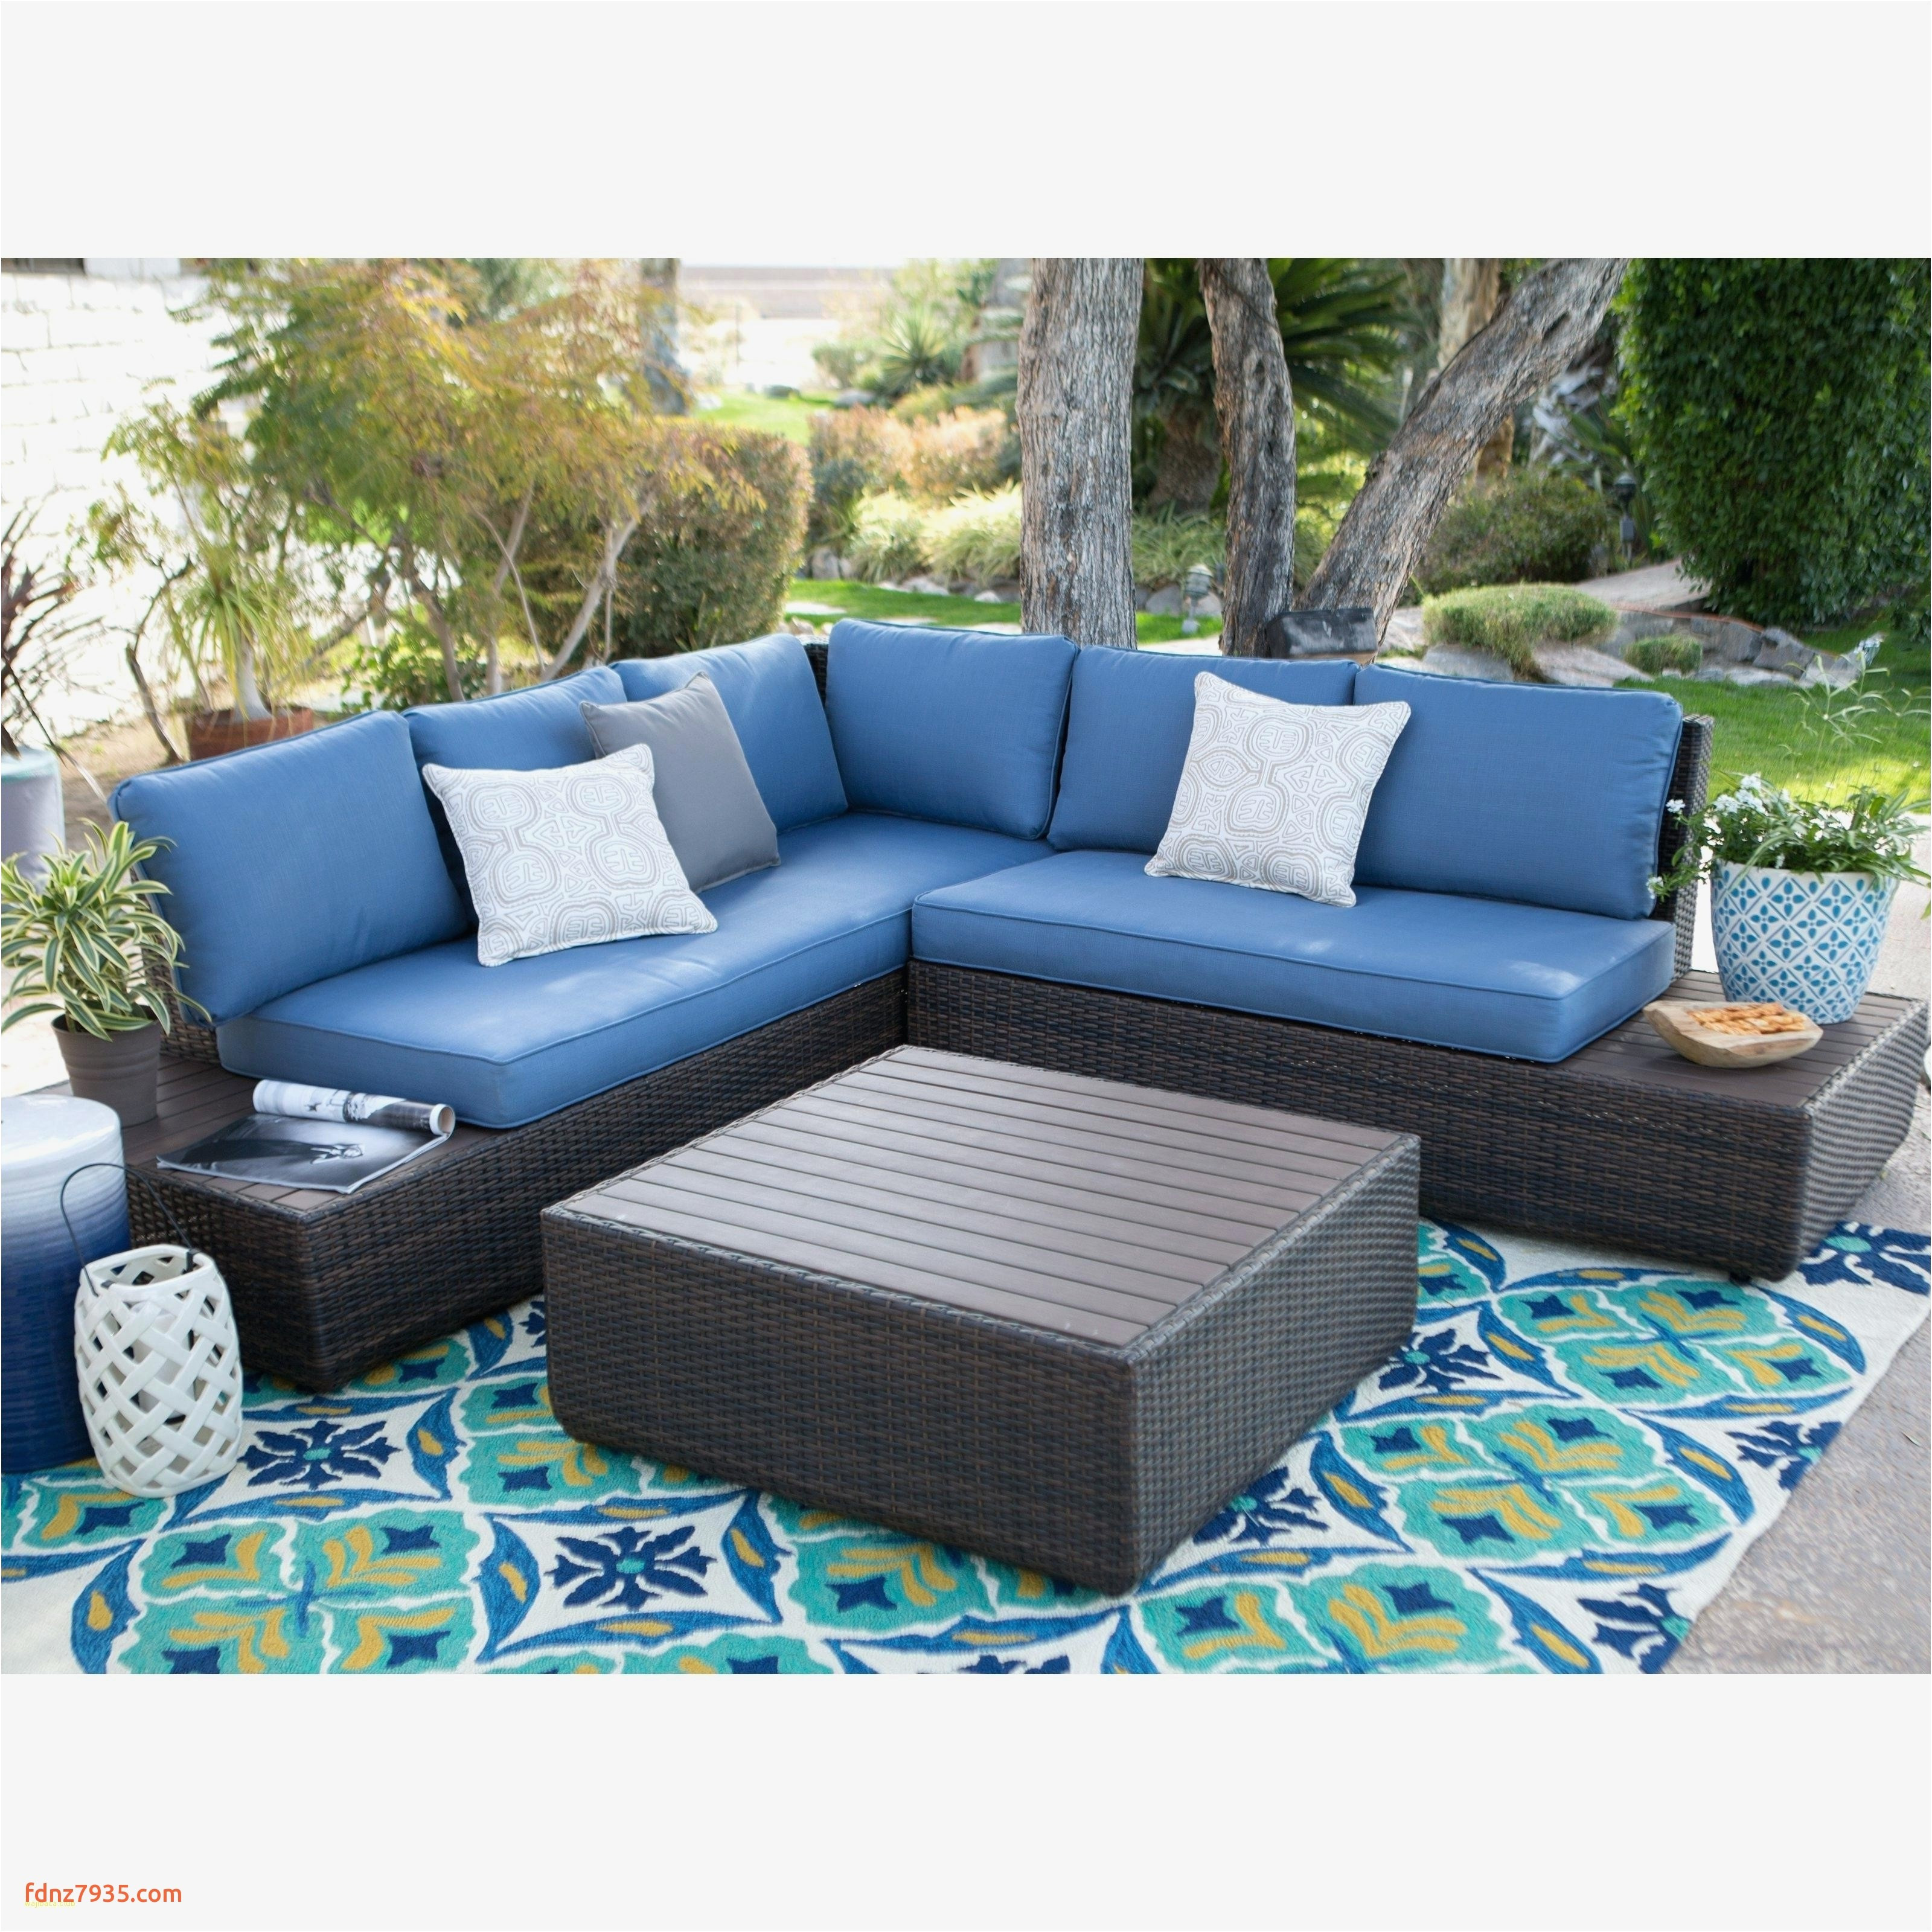 big lot patio furniture unique sales outdoor furniture awesome wicker outdoor sofa 0d patio